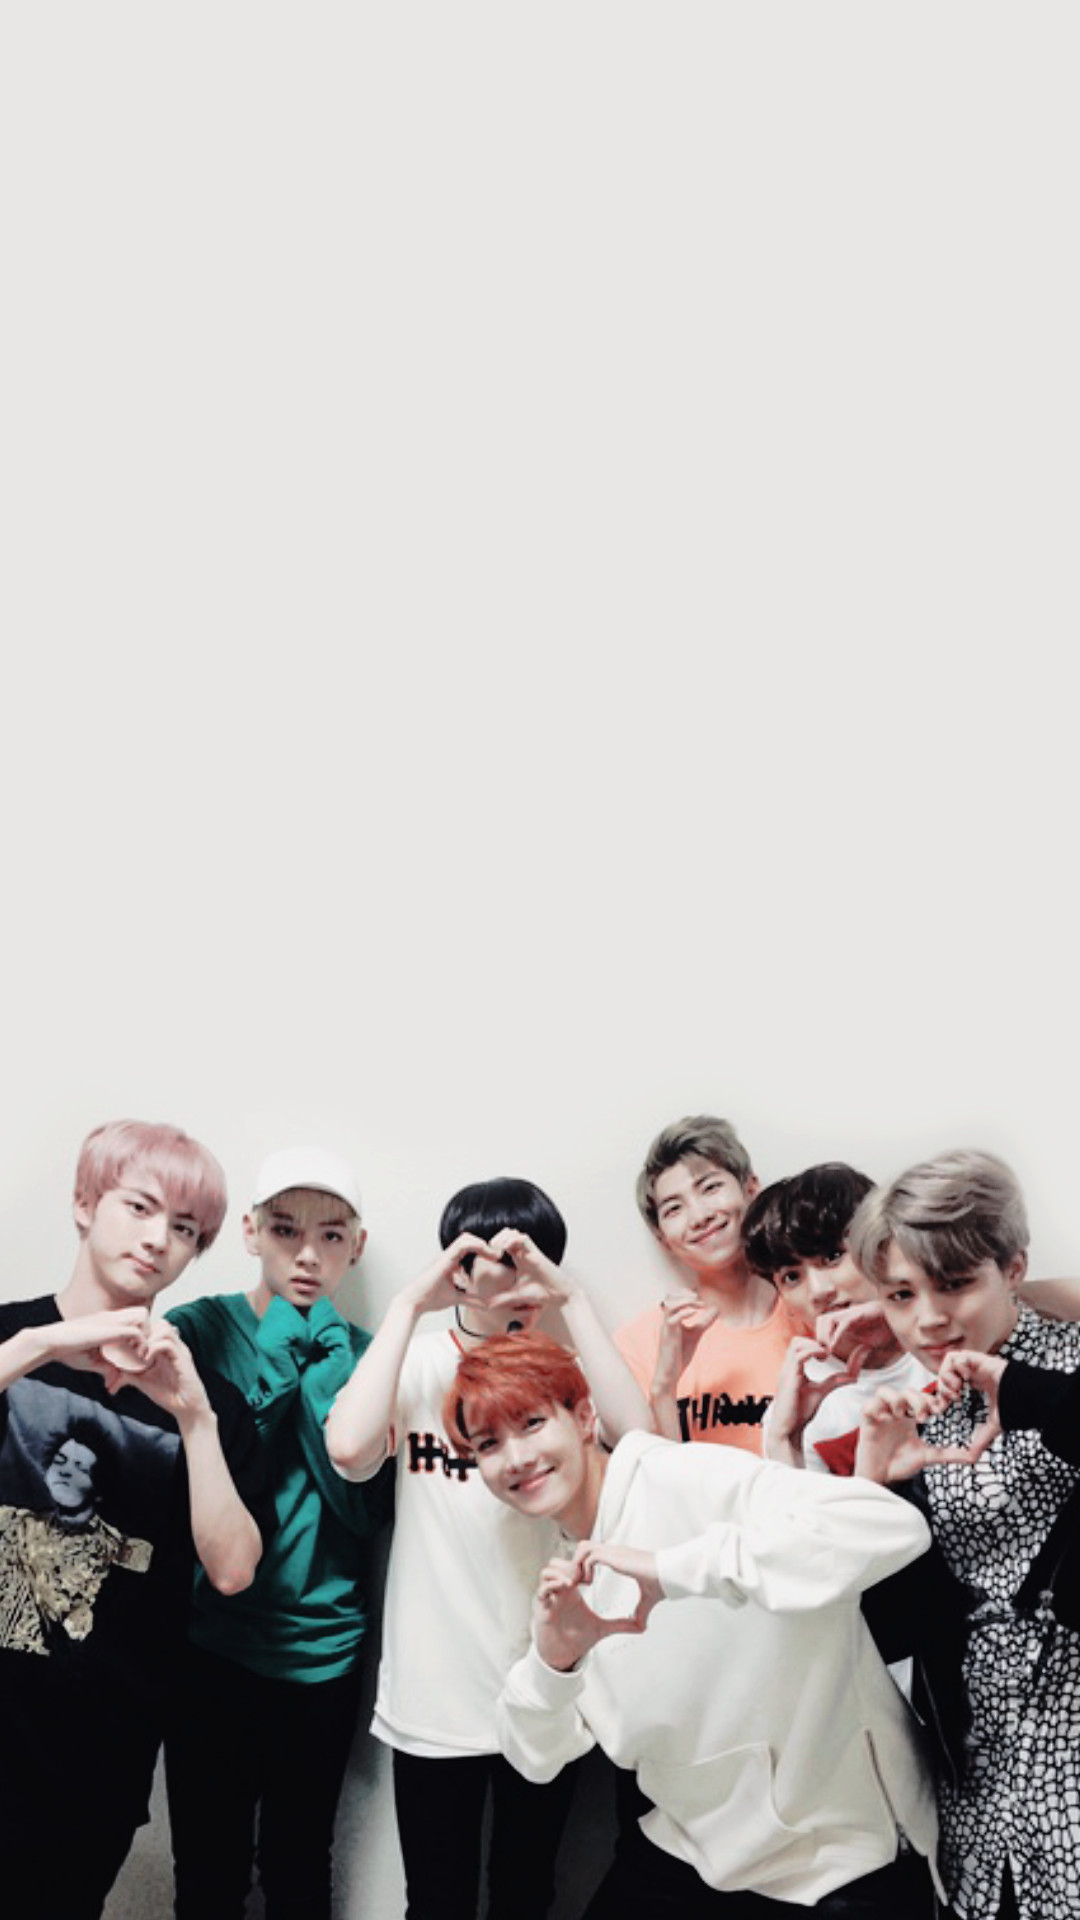 936299 new bts wallpapers 1080x1920 1080p